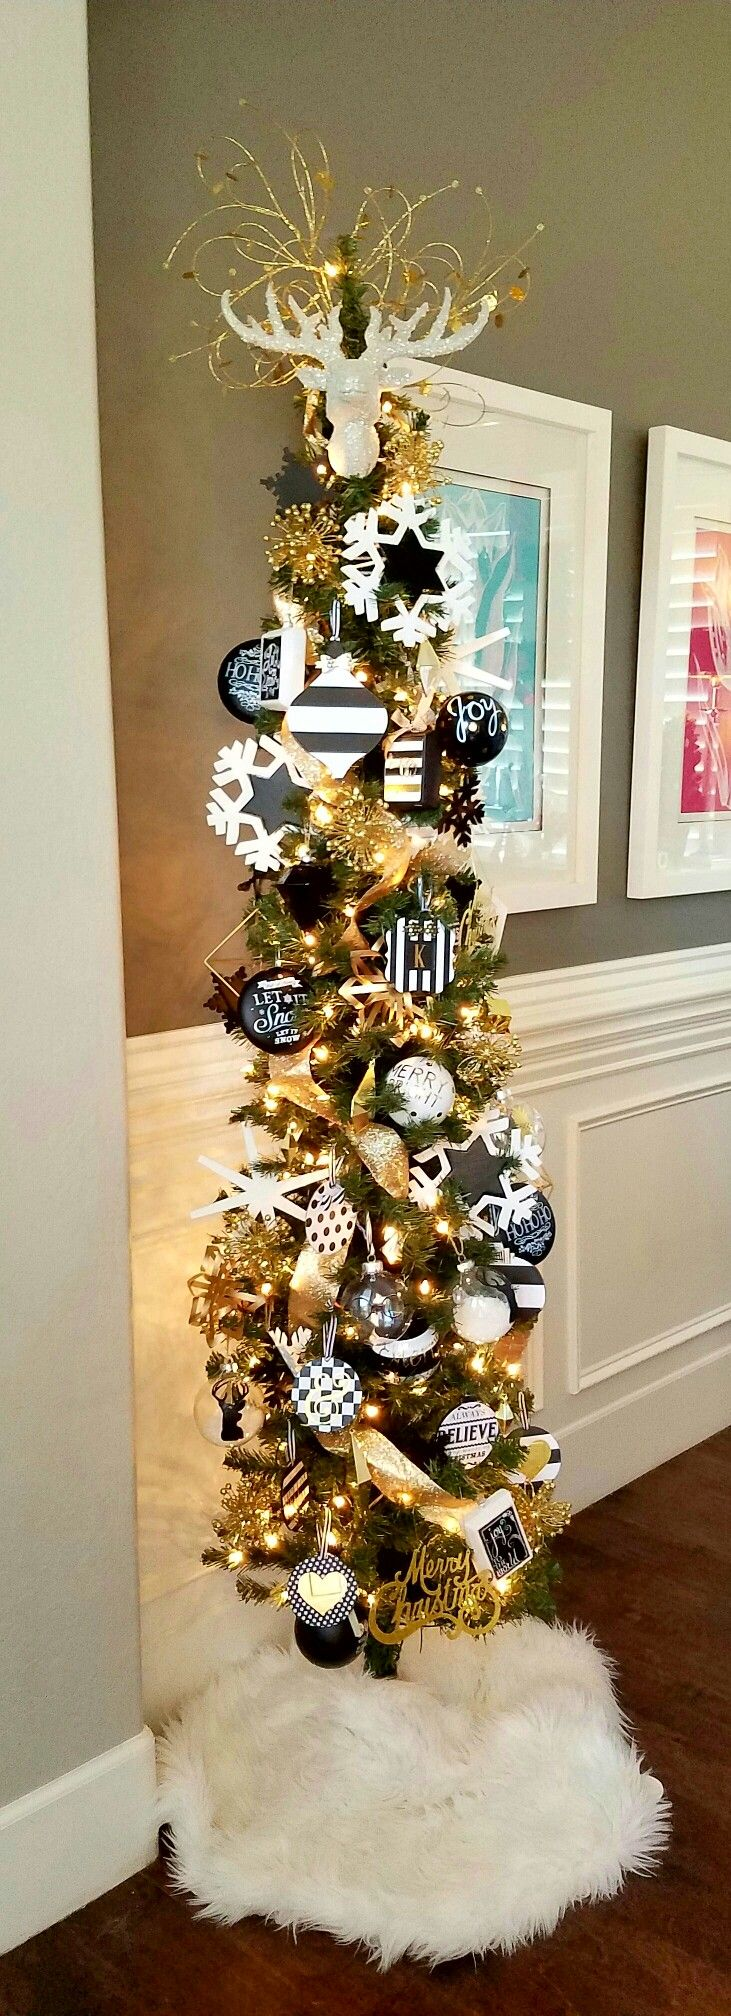 Black, white and gold pencil Christmas tree. Kate spade ...